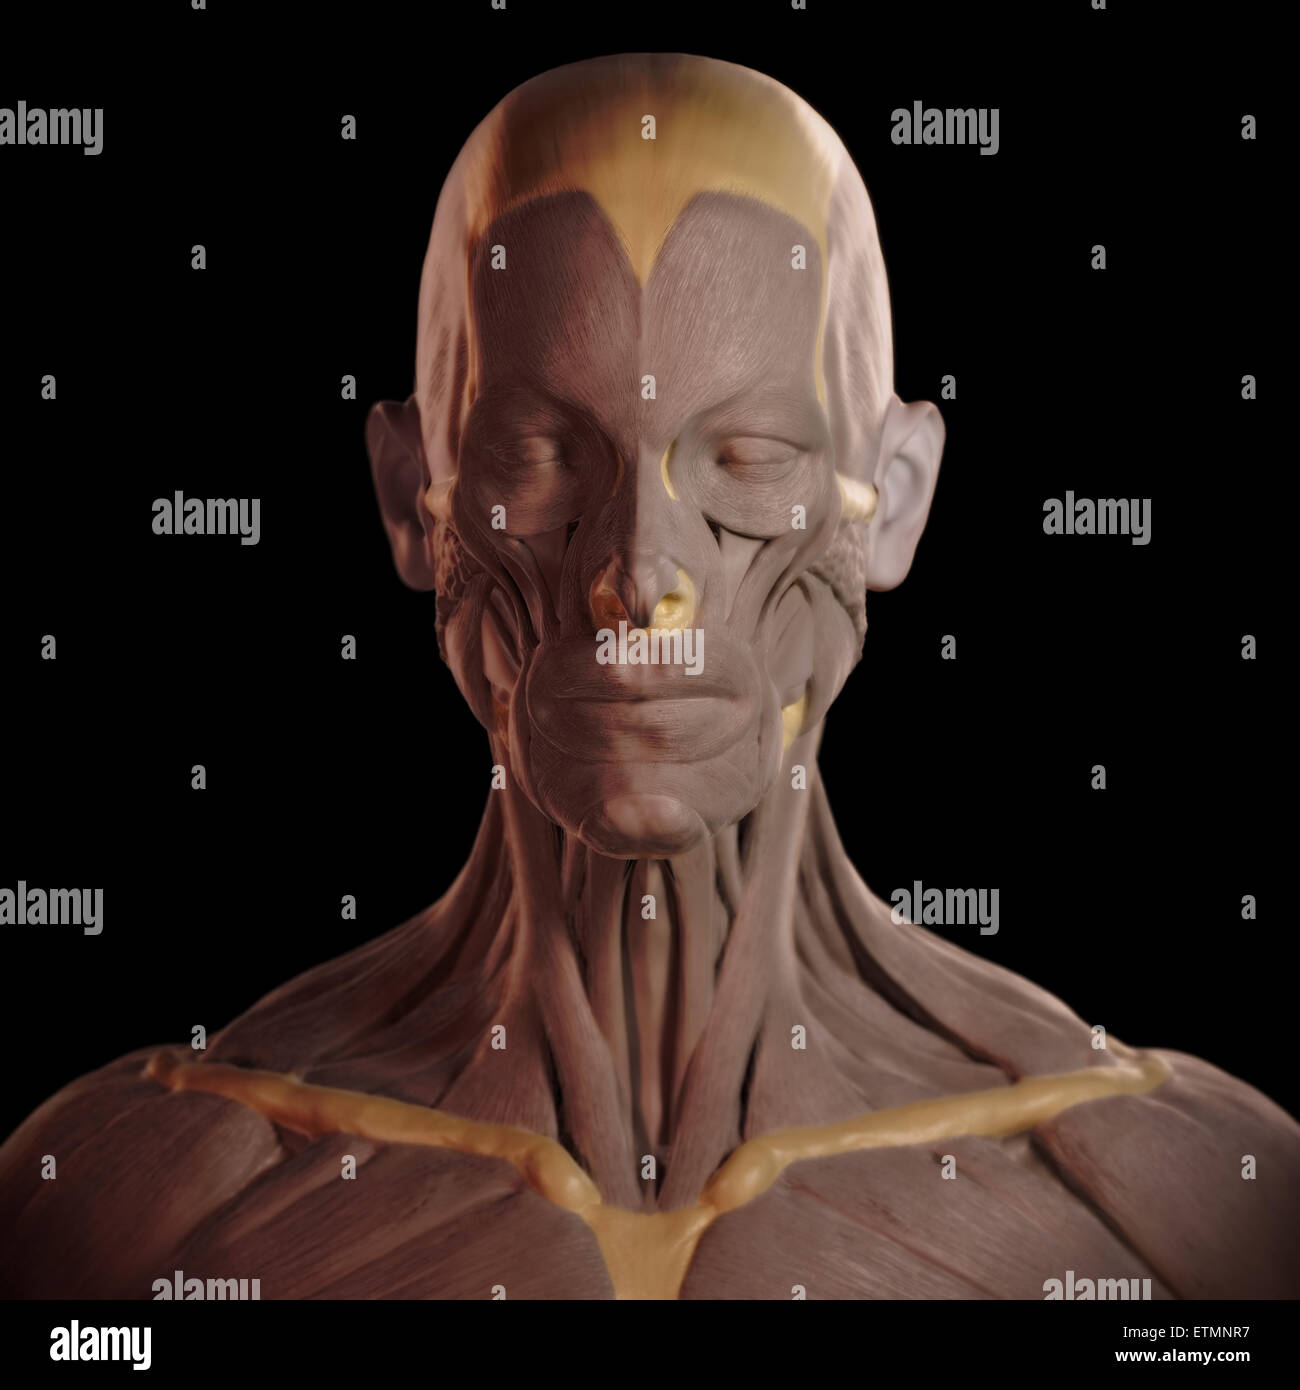 Conceptual image in the style of a clay model of the muscles of the face. Stock Photo